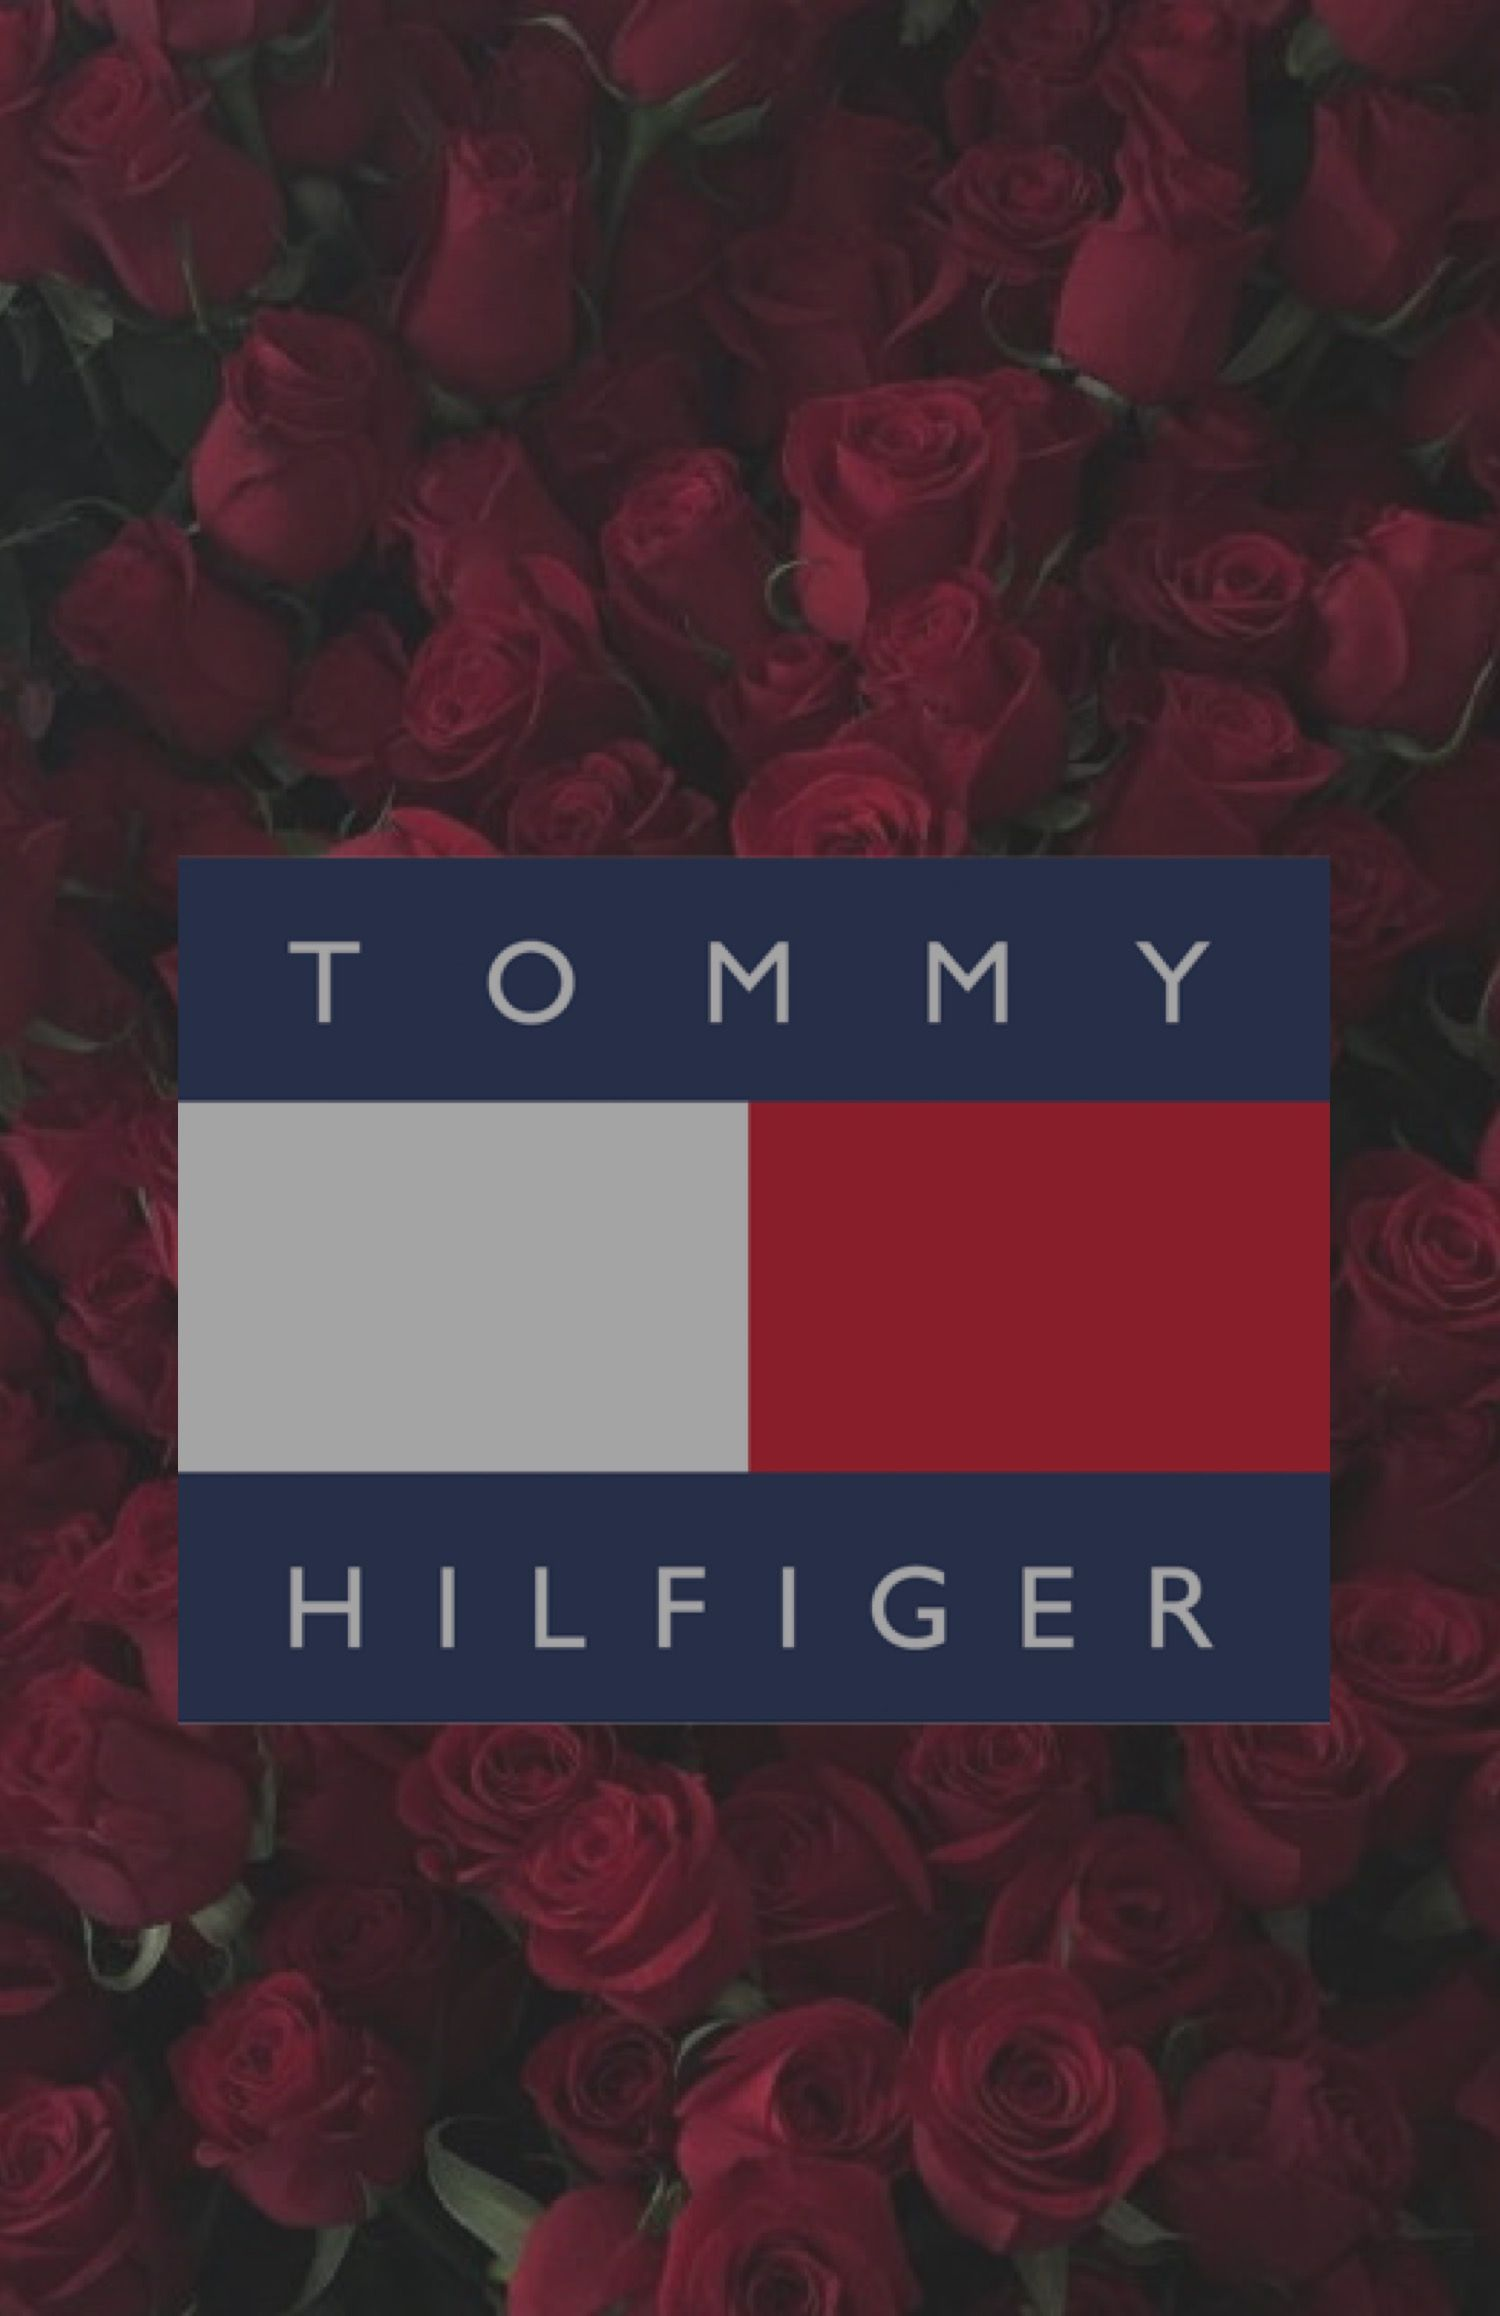 Wallpaper tommy hilfiger rose background